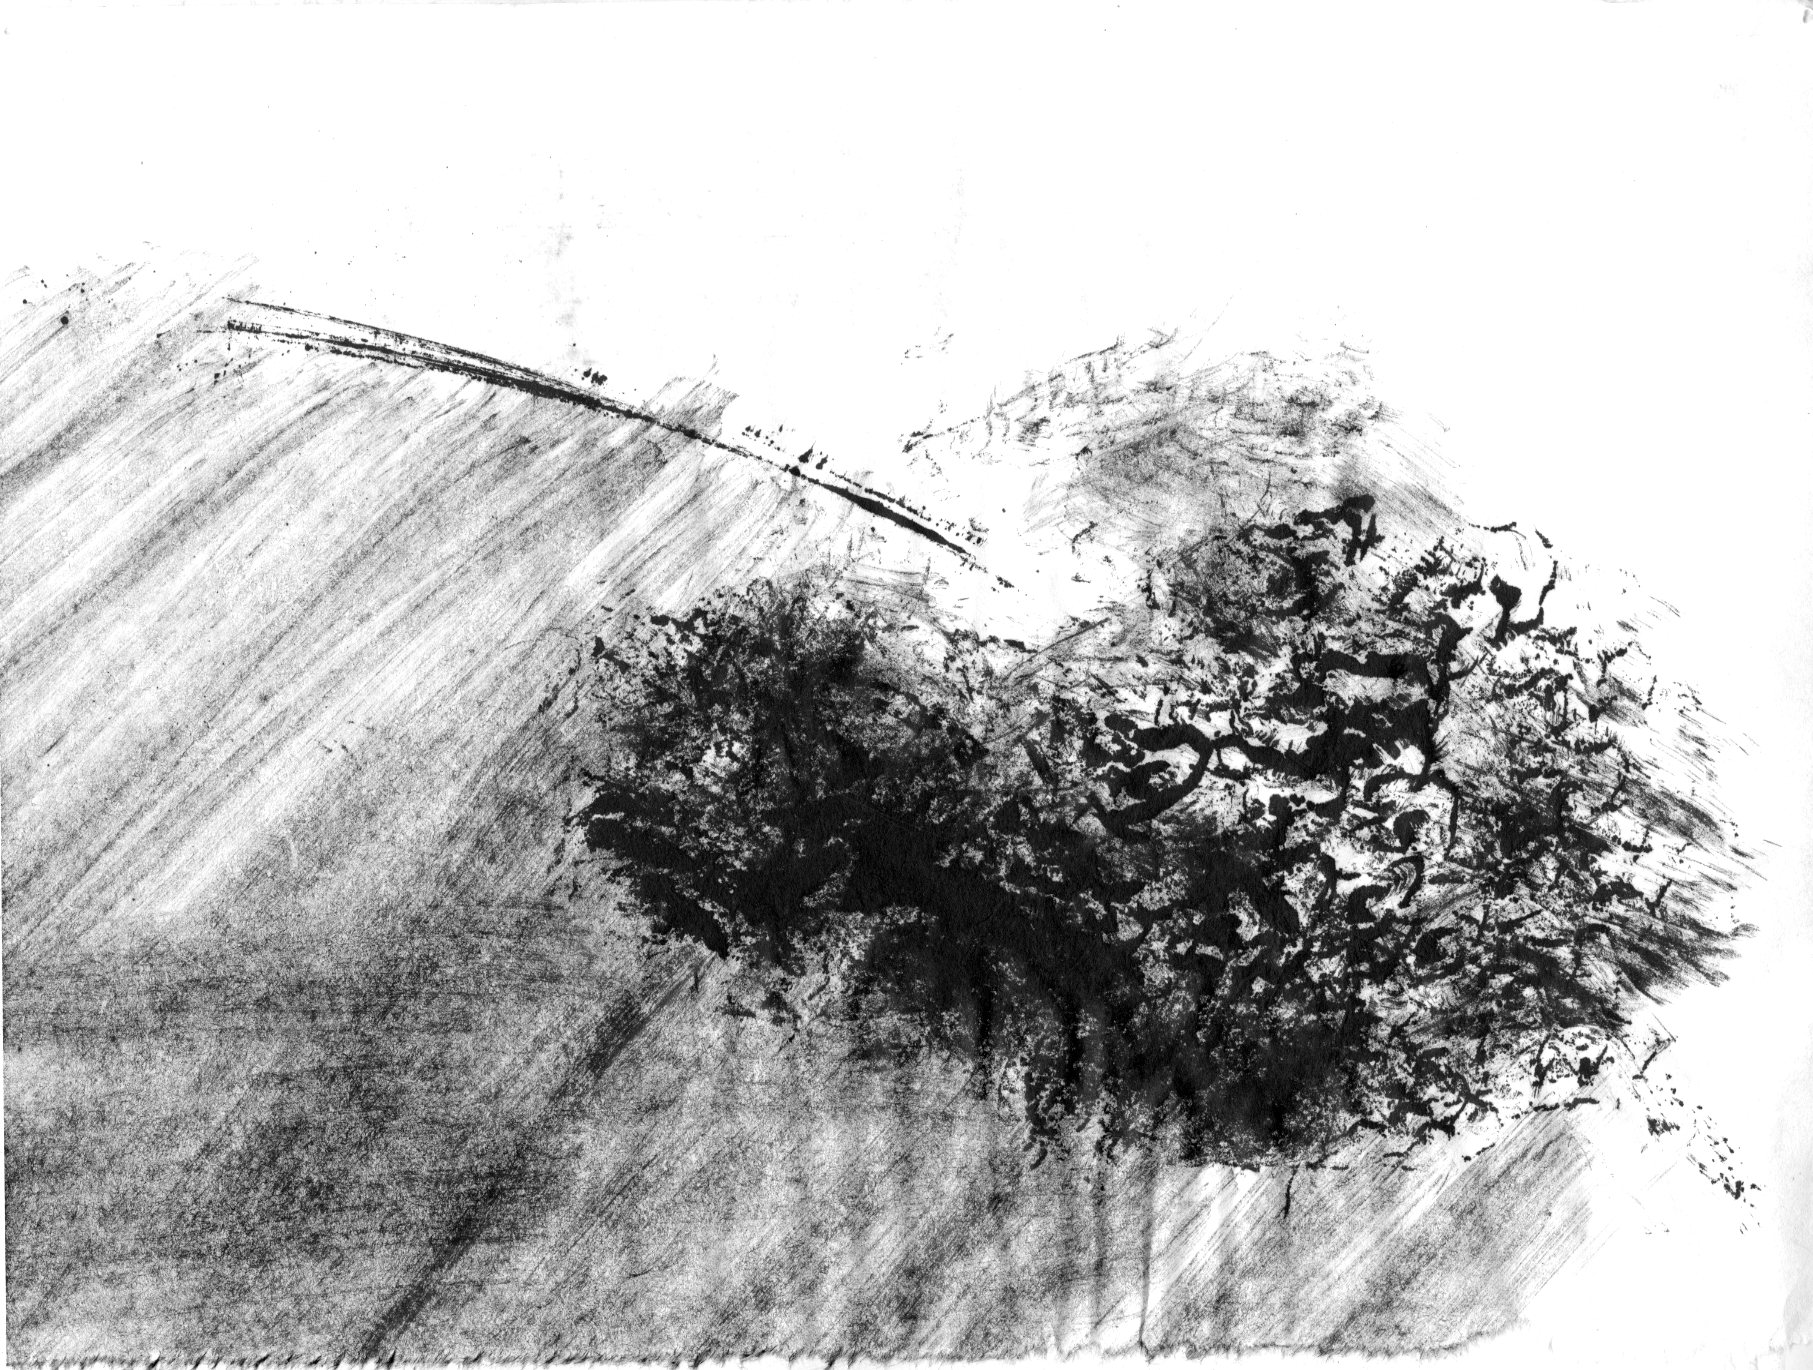 Field Study. Ink on Rice Paper